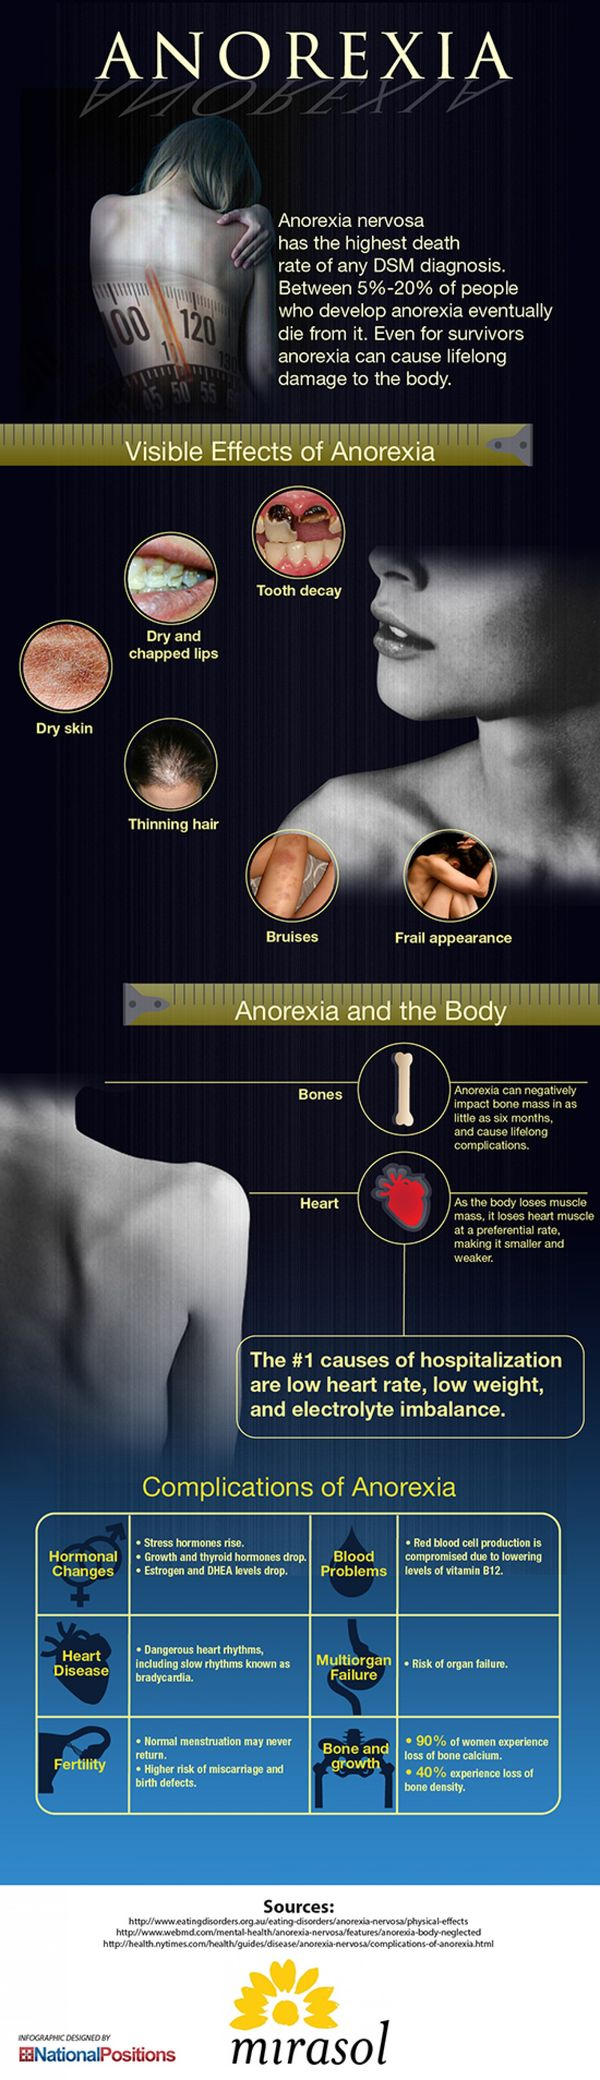 1. What is anorexia?